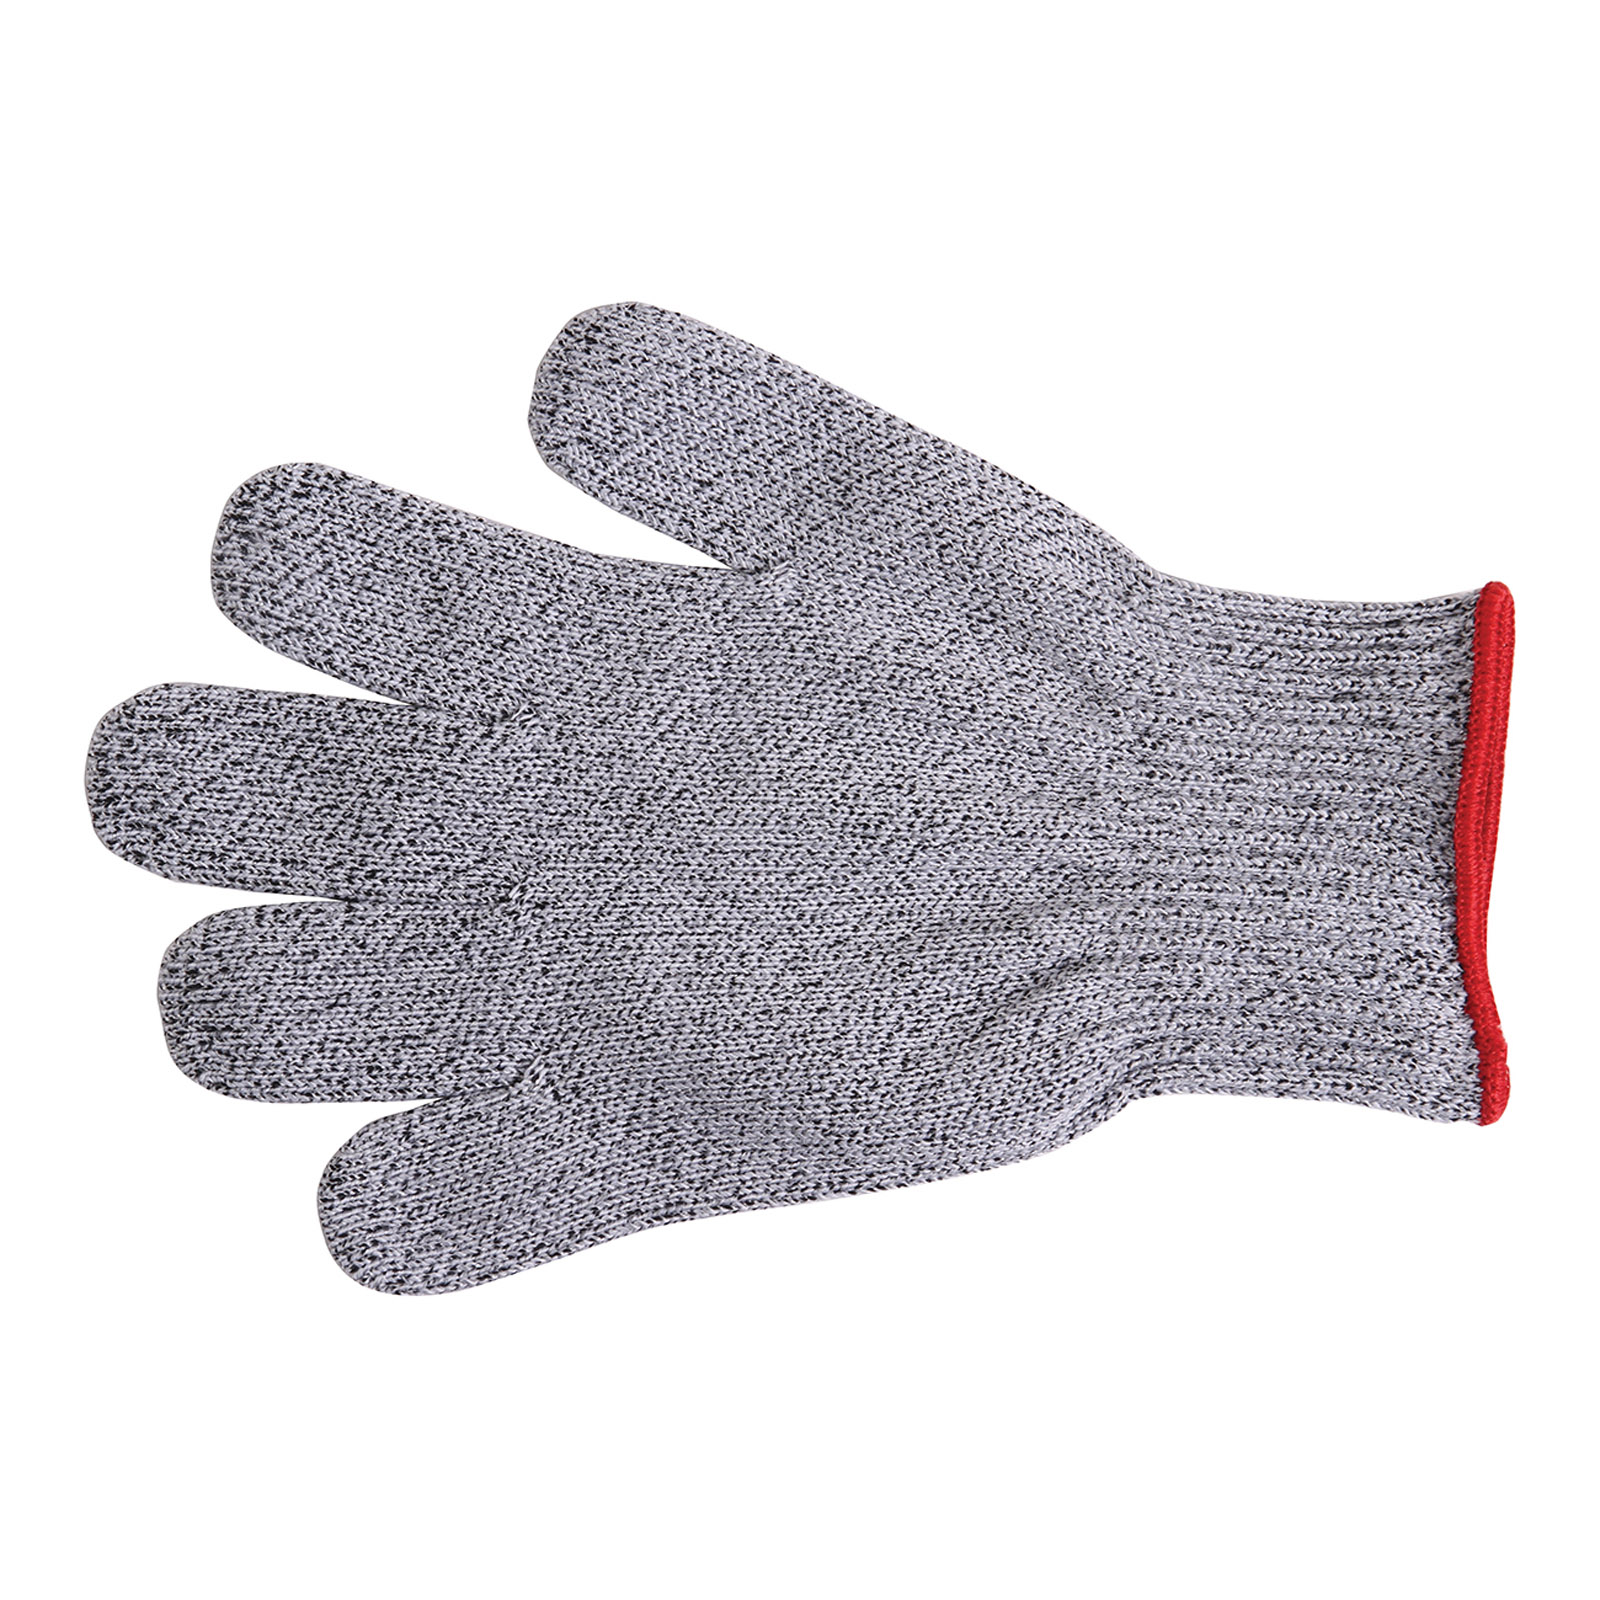 Mercer Culinary M33412S glove, cut resistant